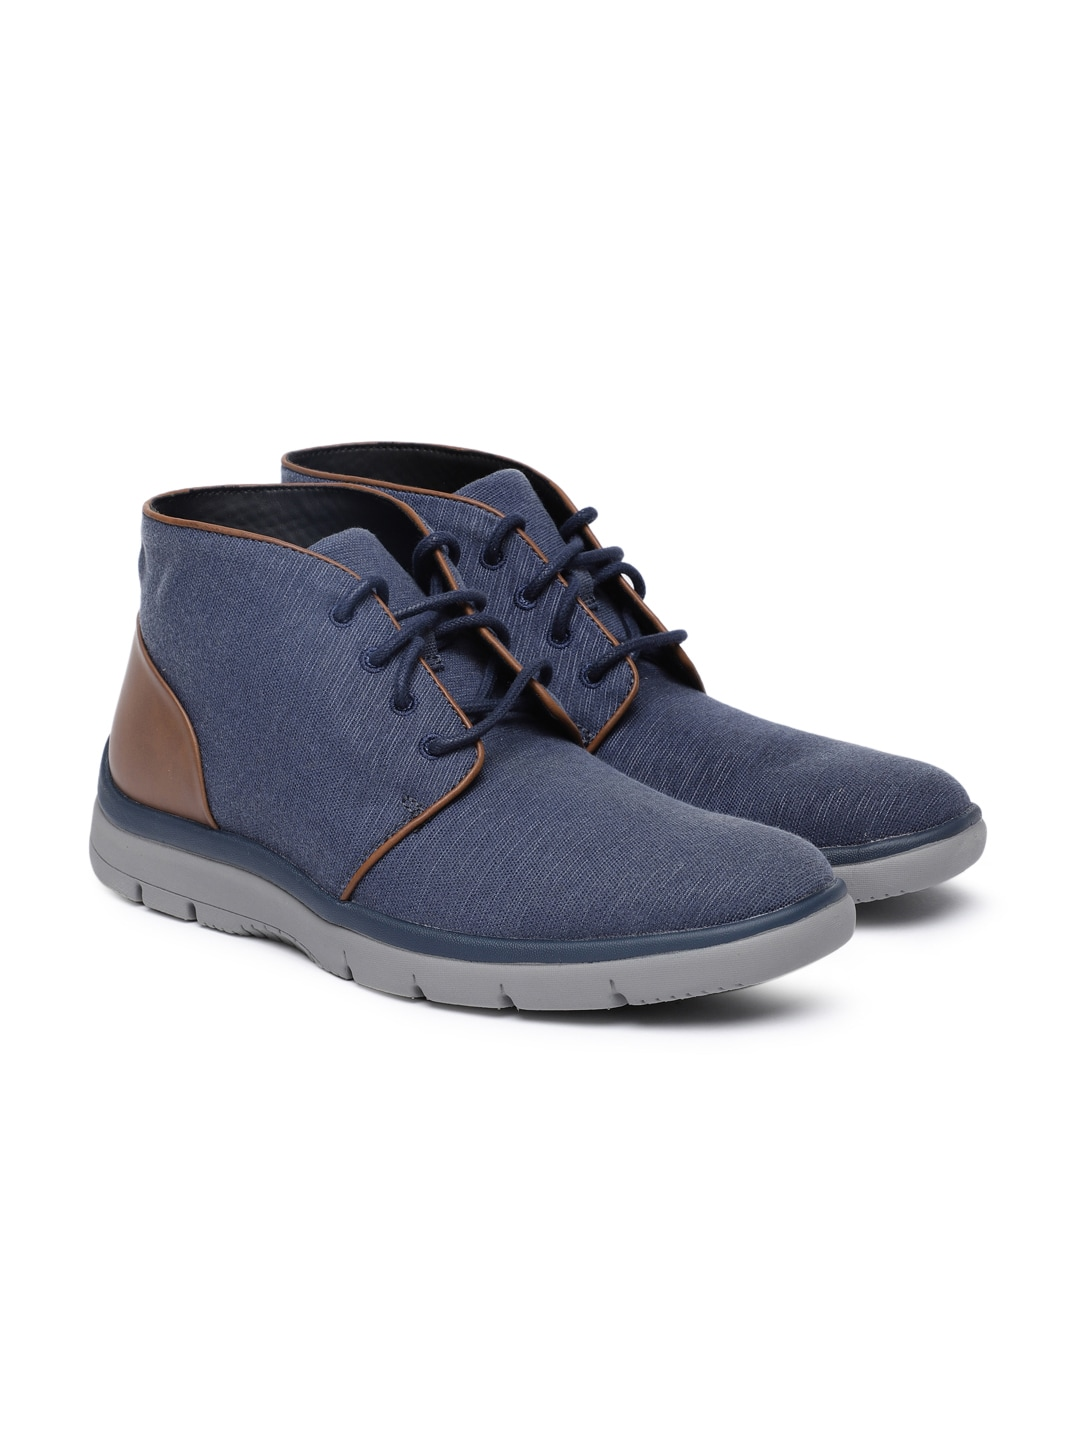 a7e4afea63e7 CLARKS - Exclusive Clarks Shoes Online Store in India - Myntra